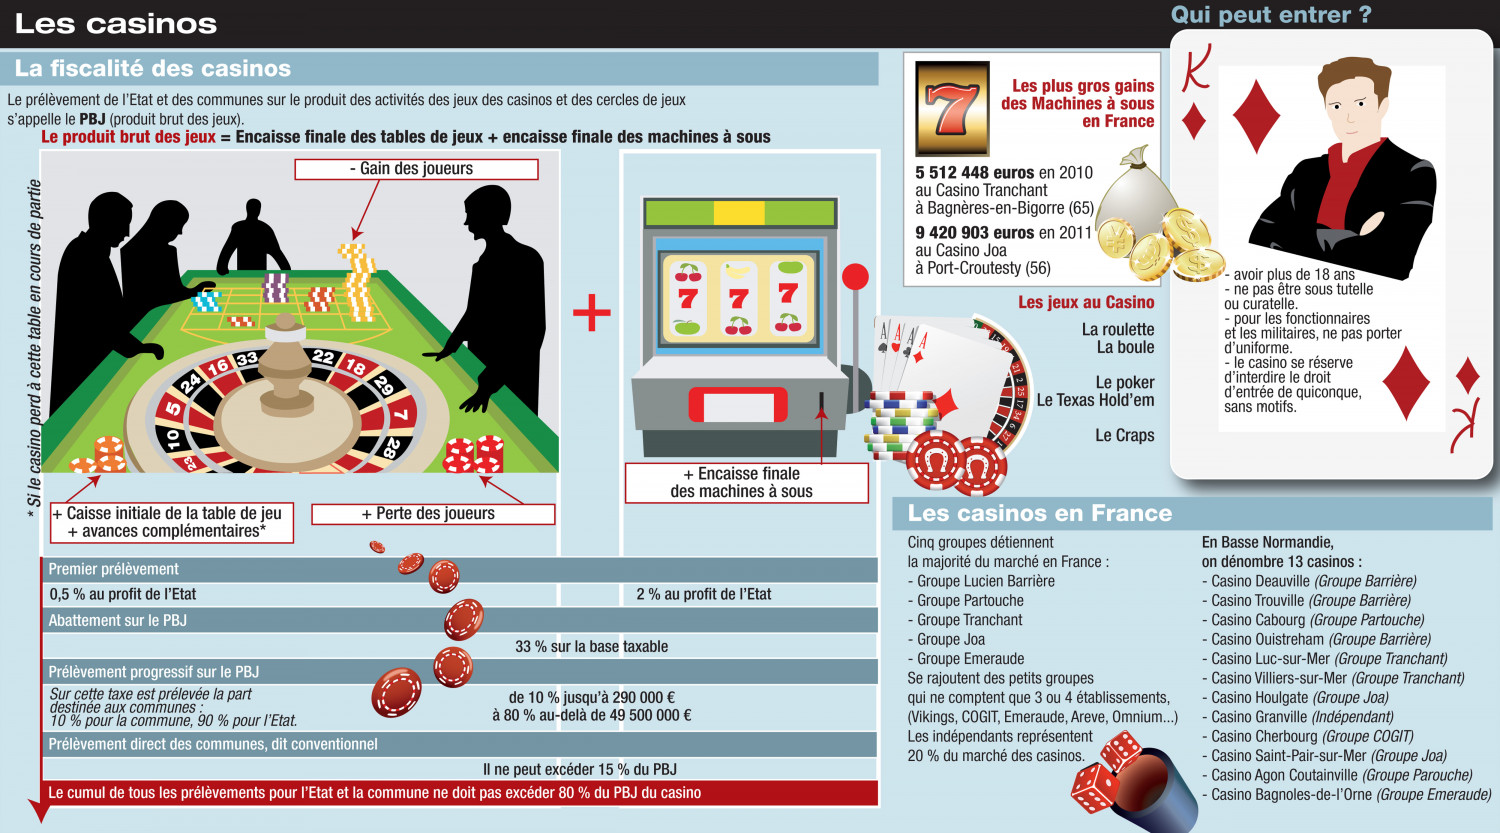 Les Casinos en France Infographic